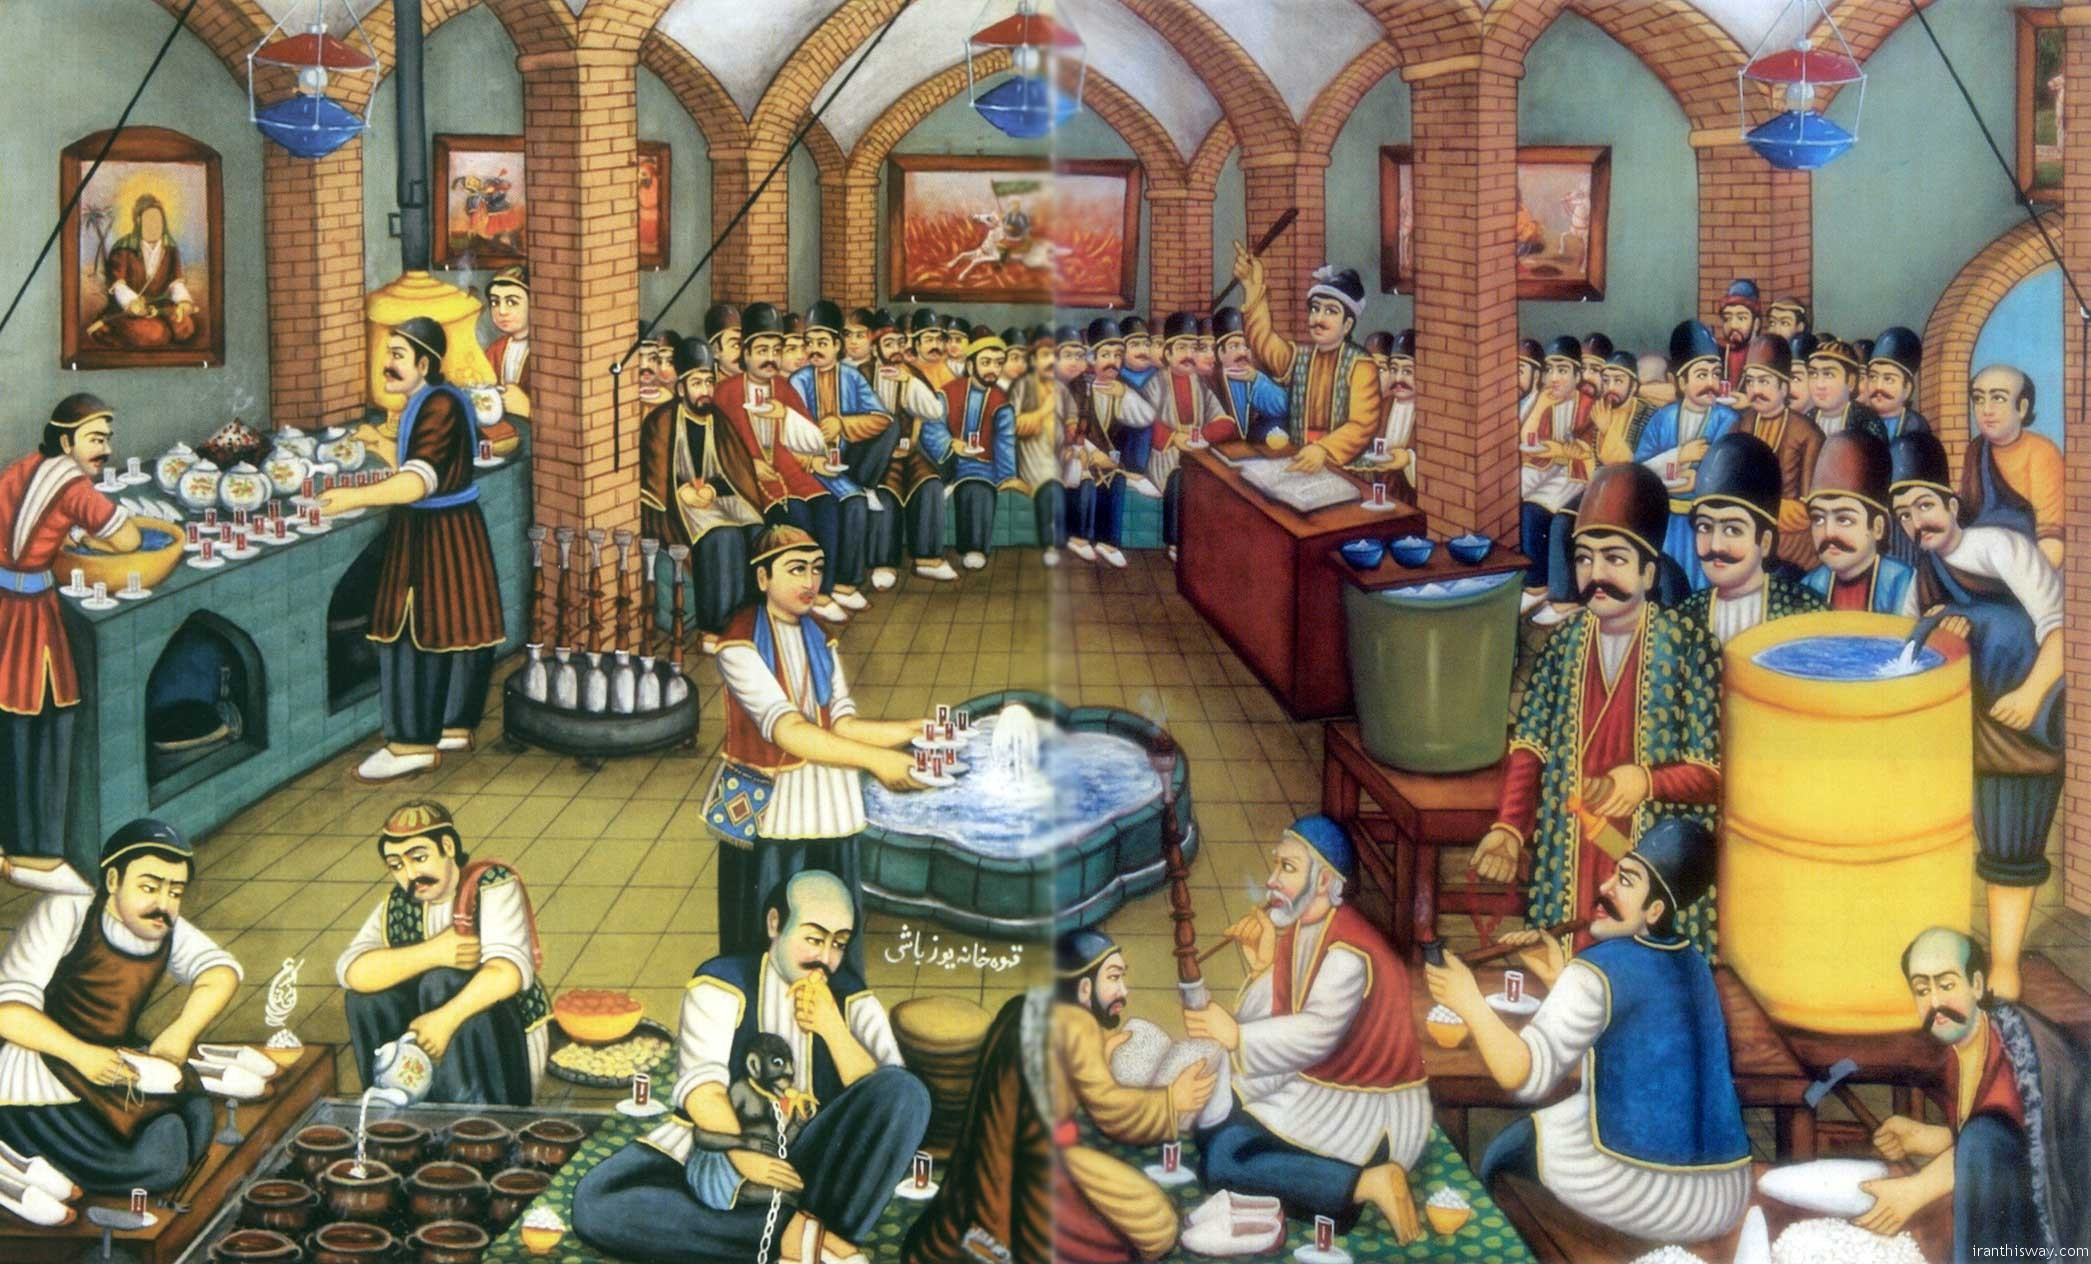 Traditional dizi resturant in Iran